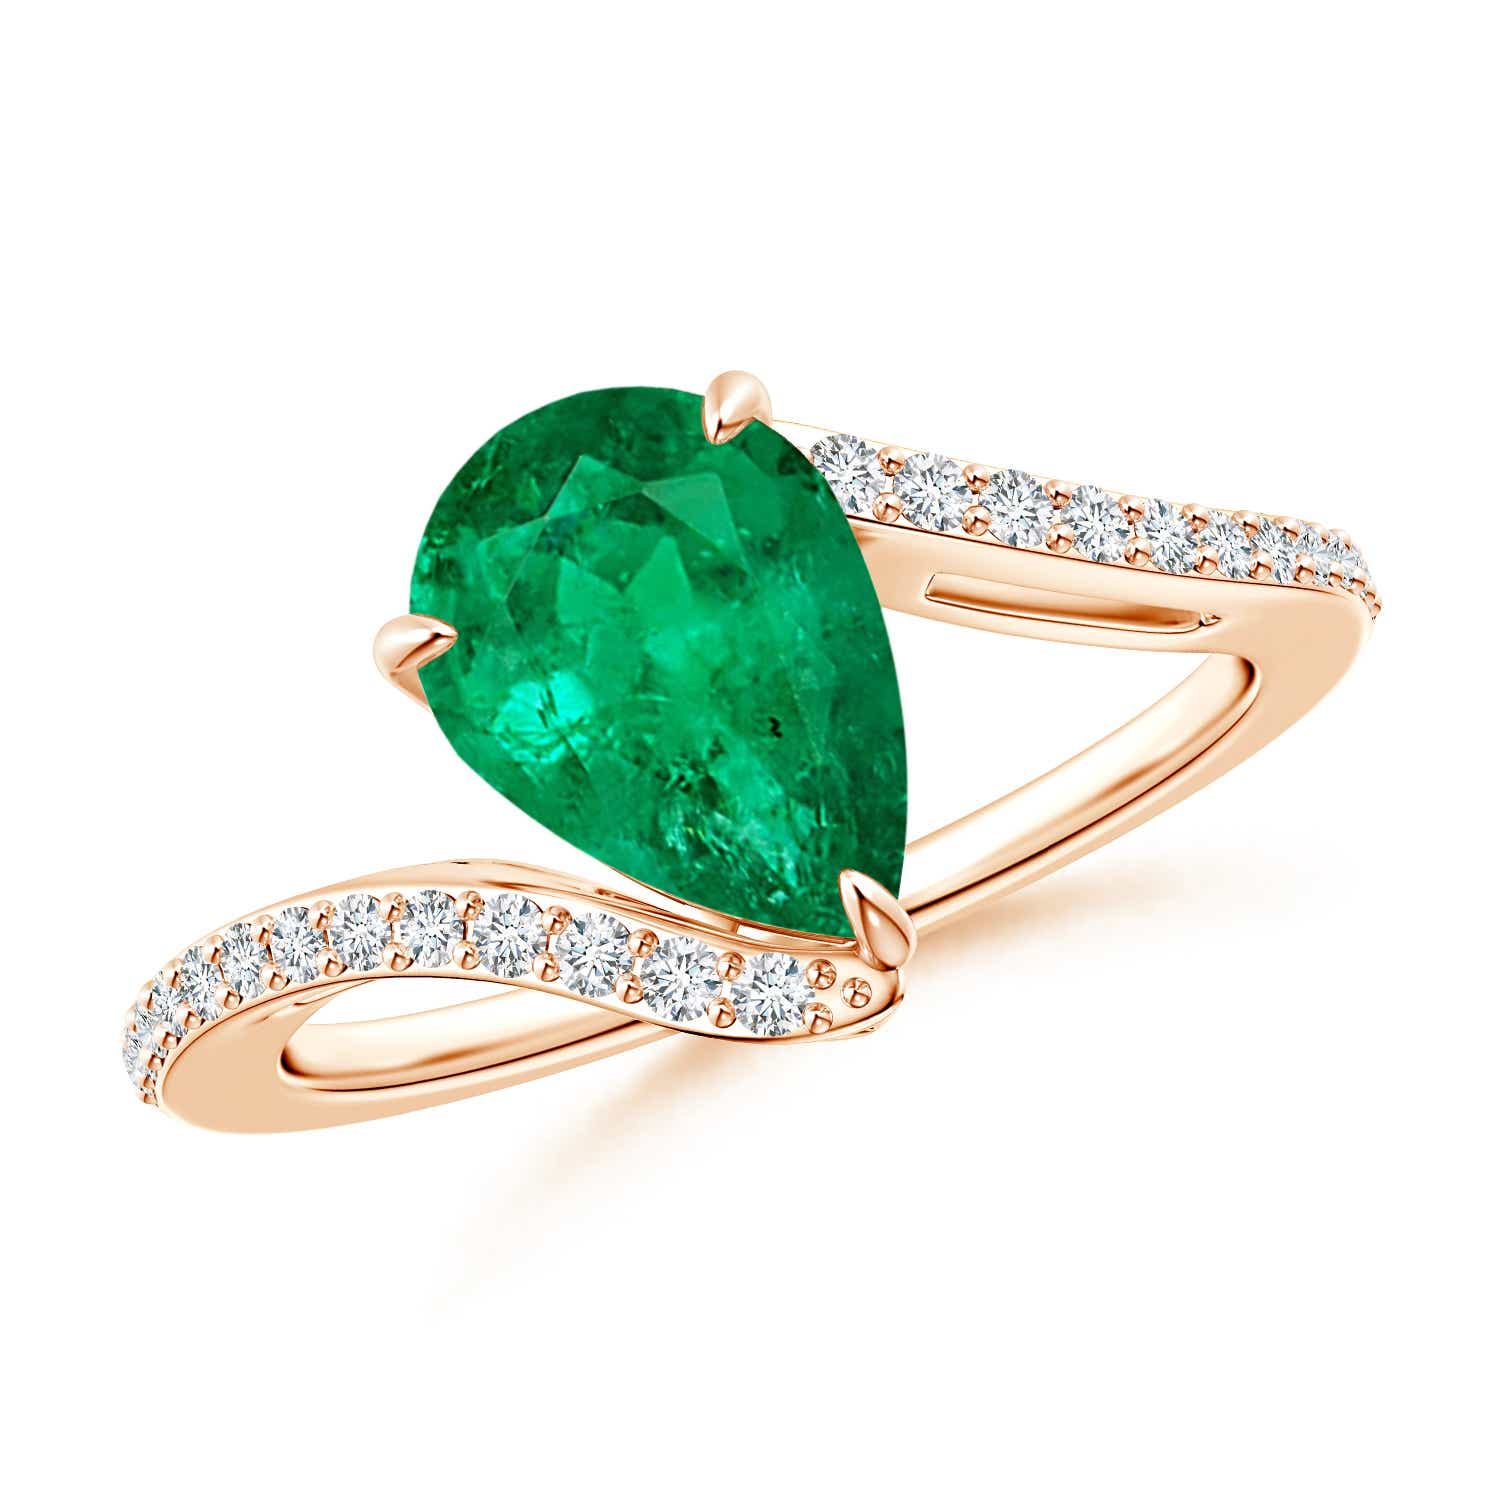 GIA Certified Pear-Shaped Emerald Bypass Ring with Diamonds